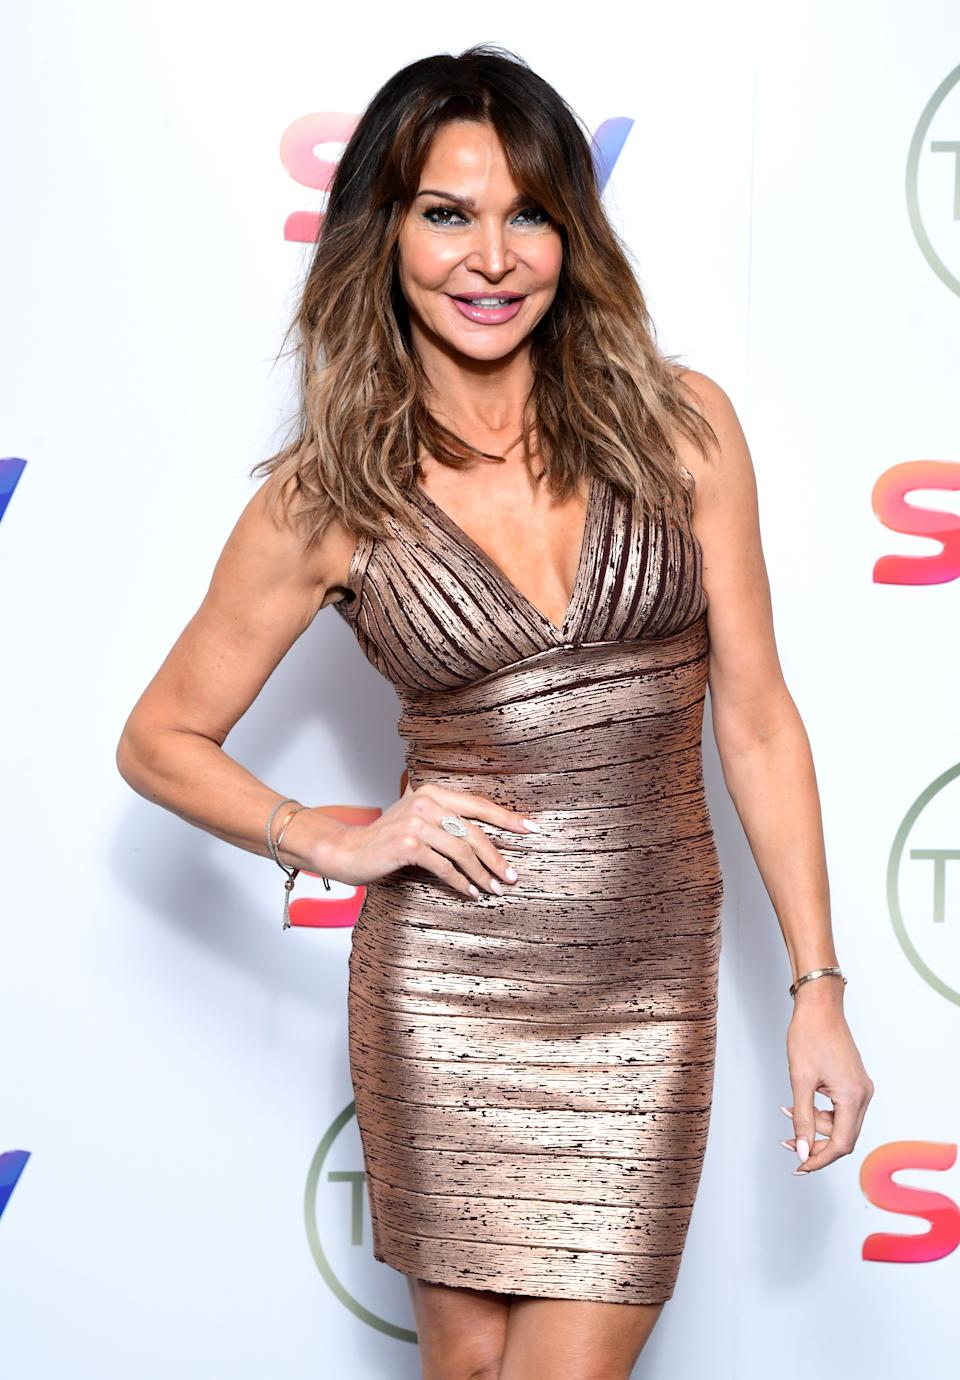 Lizzie Cundy attending the TRIC Awards 2020 held at the Grosvenor Hotel, London. (Photo by Ian West/PA Images via Getty Images)